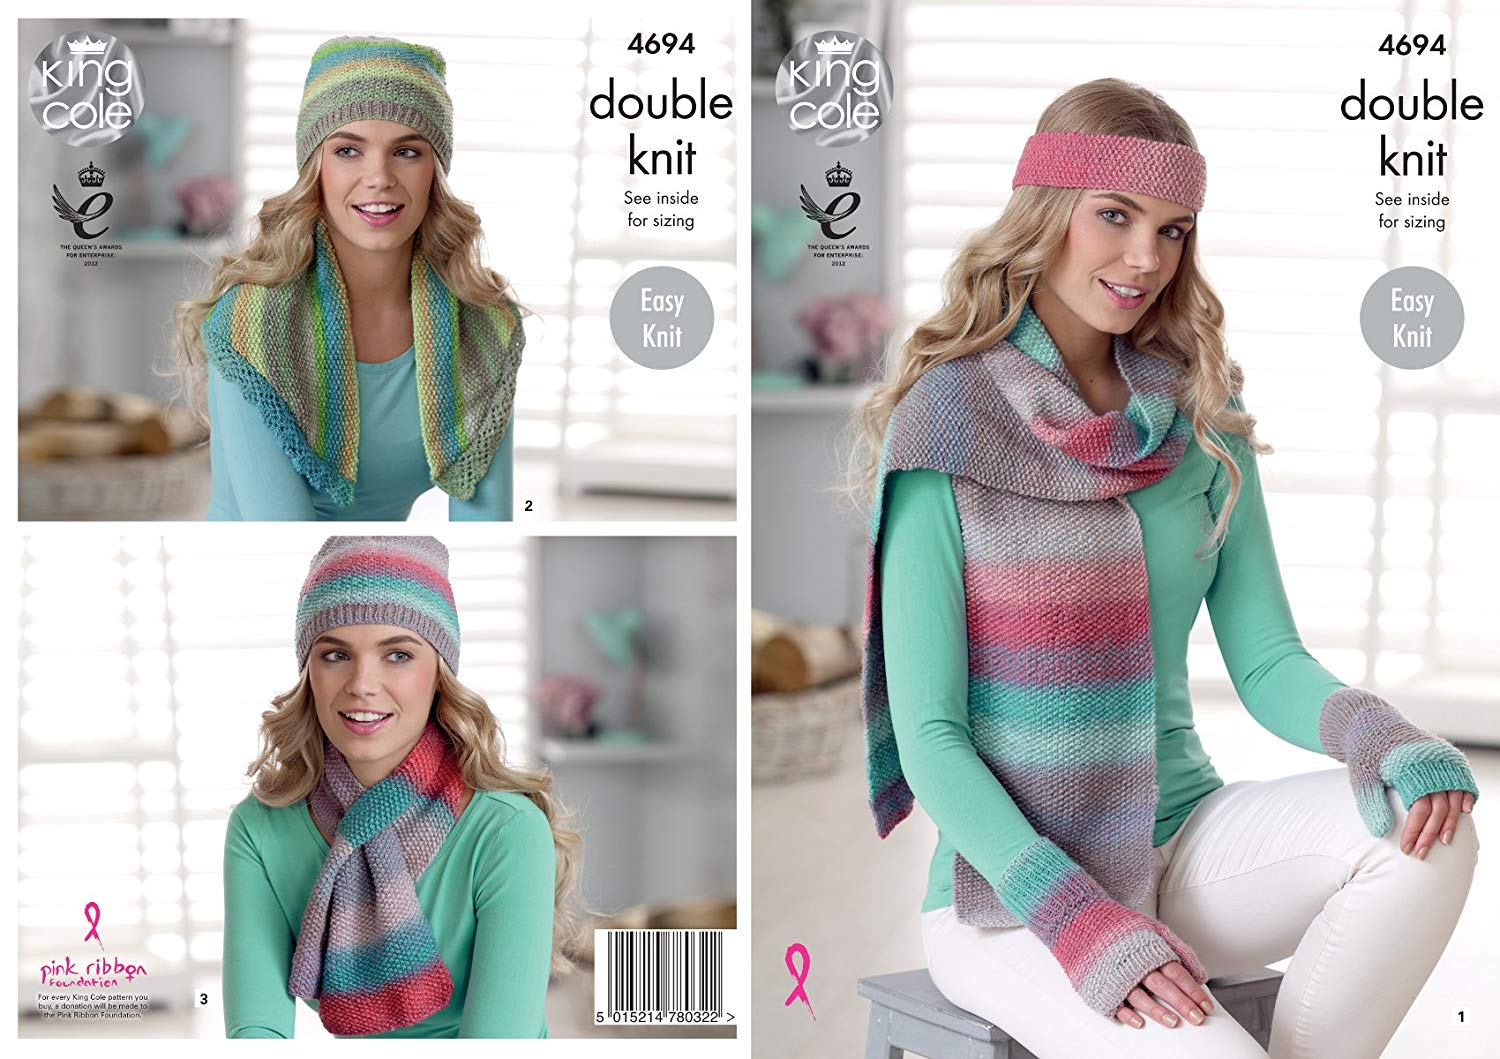 King Cole Ladies Double Knitting Pattern Ribbed Round or V Neck Sweaters 5026